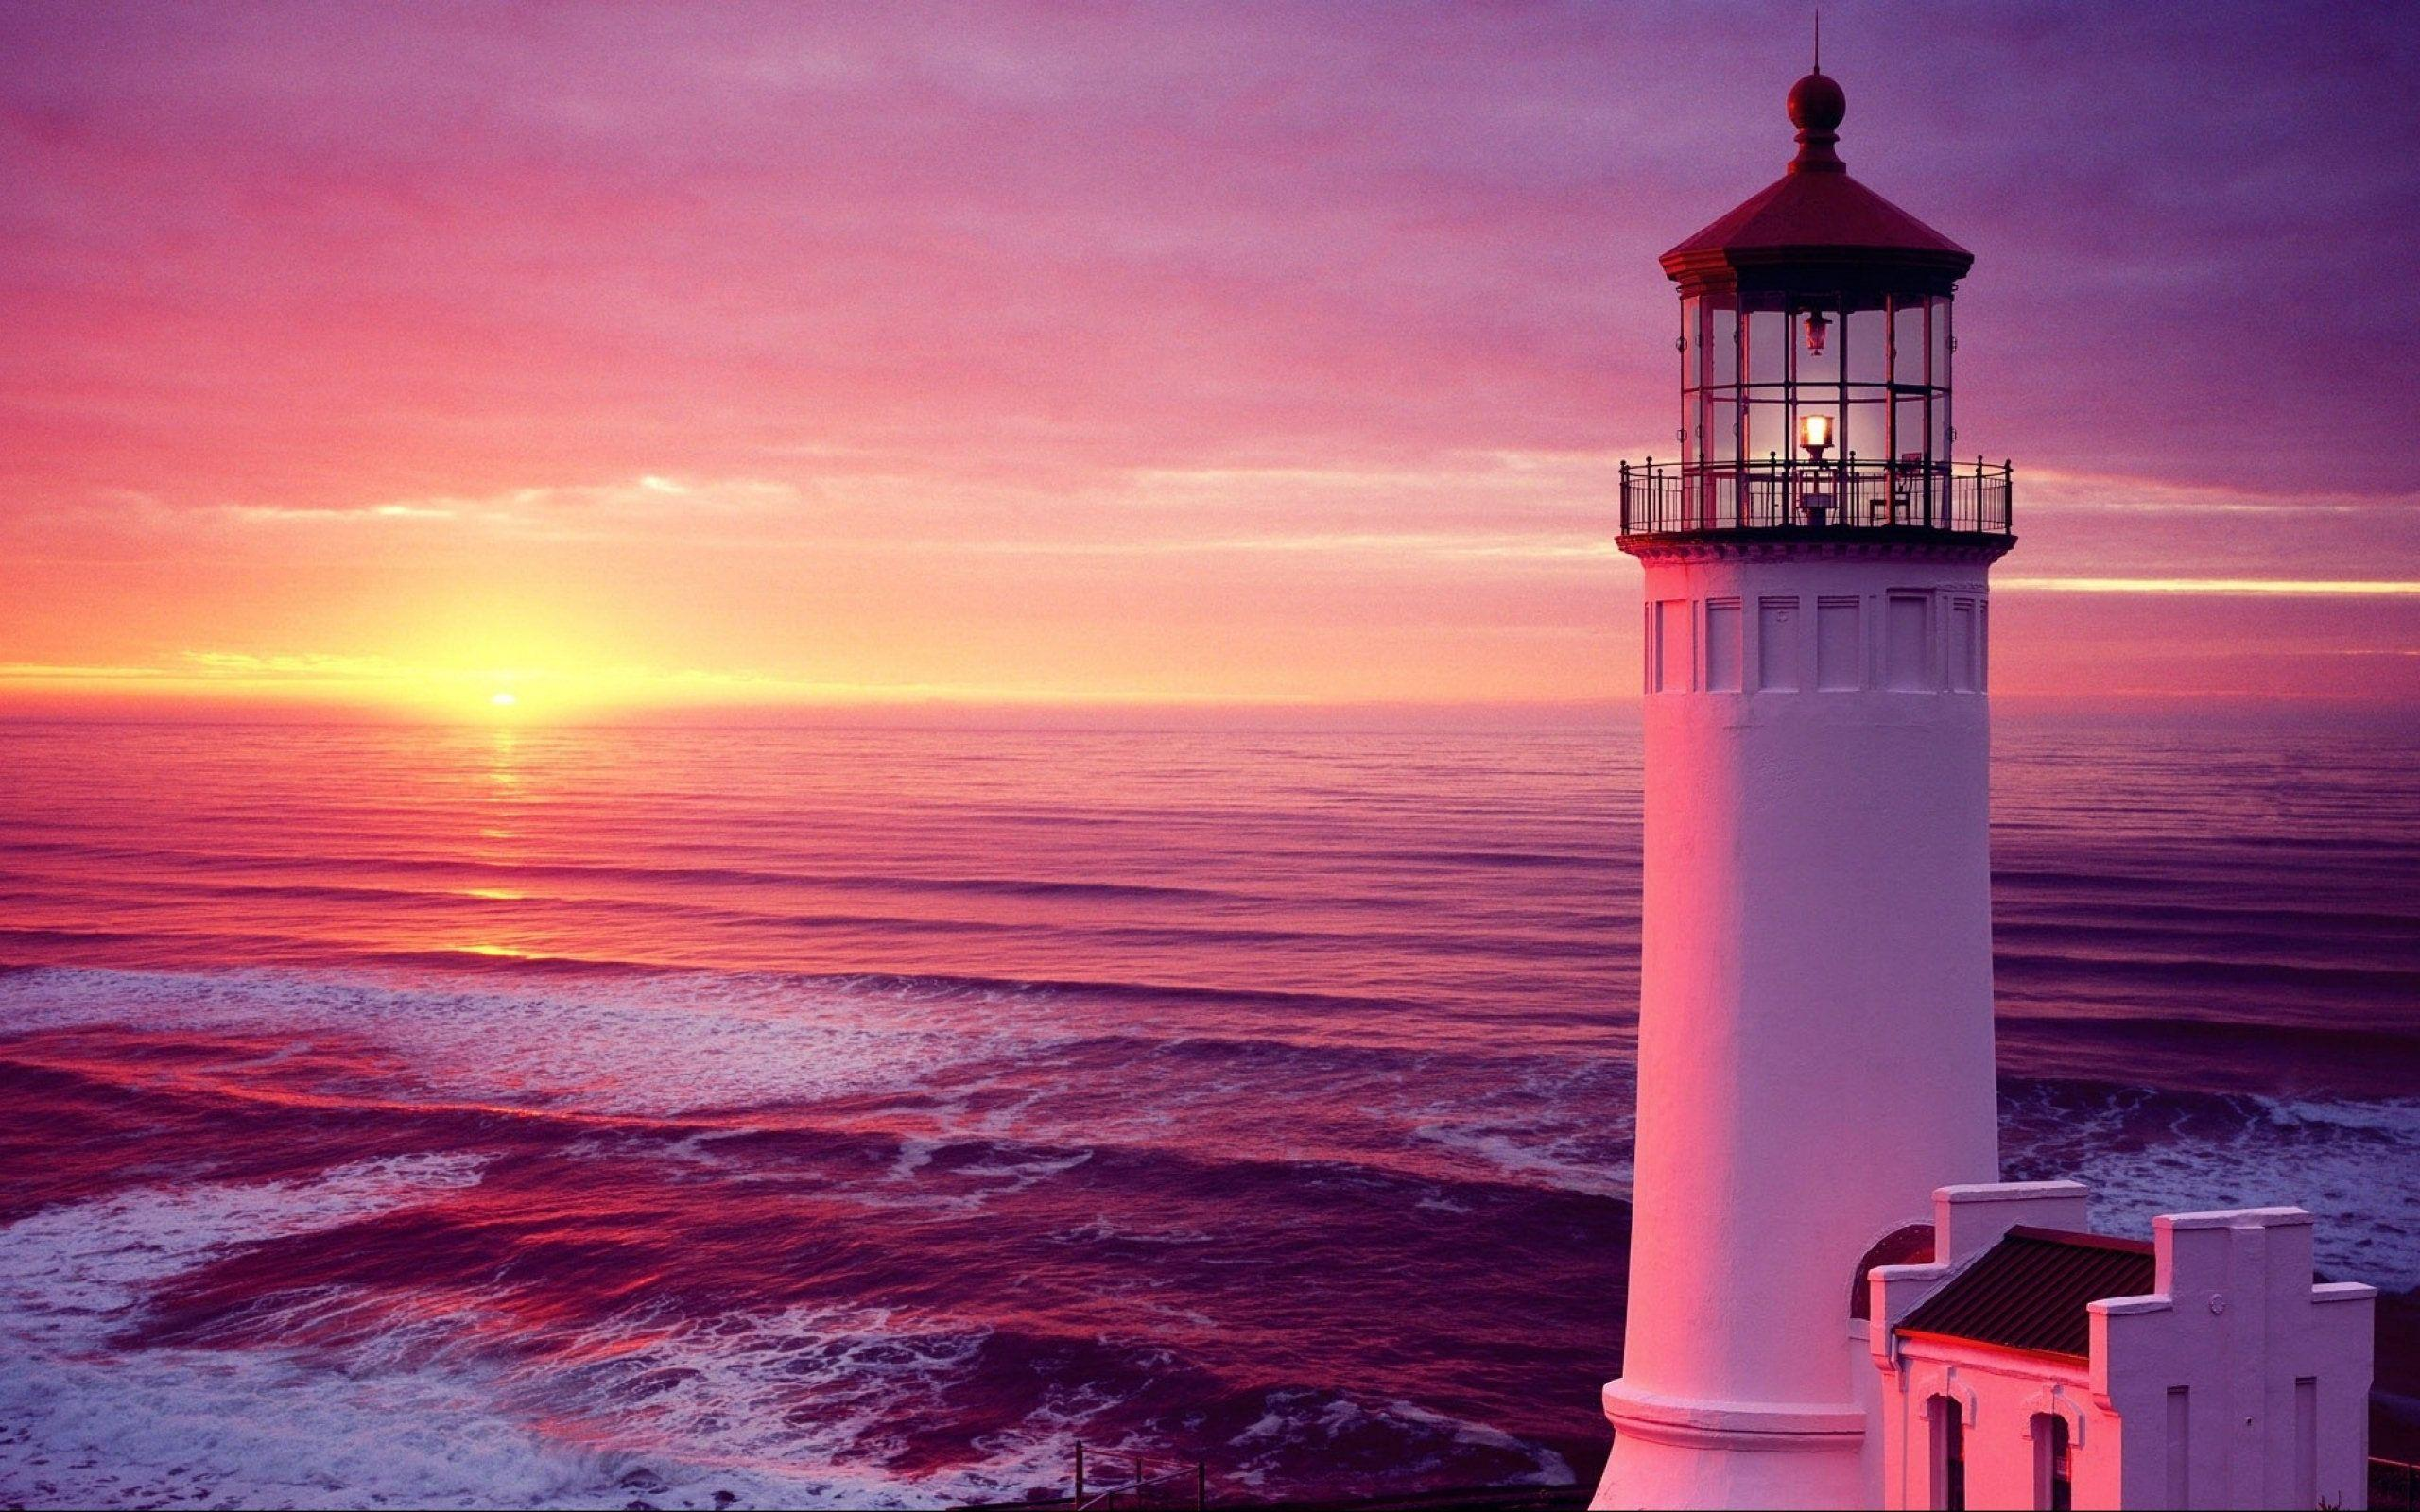 Beach Lighthouse Wallpaper | Wallpaper Download